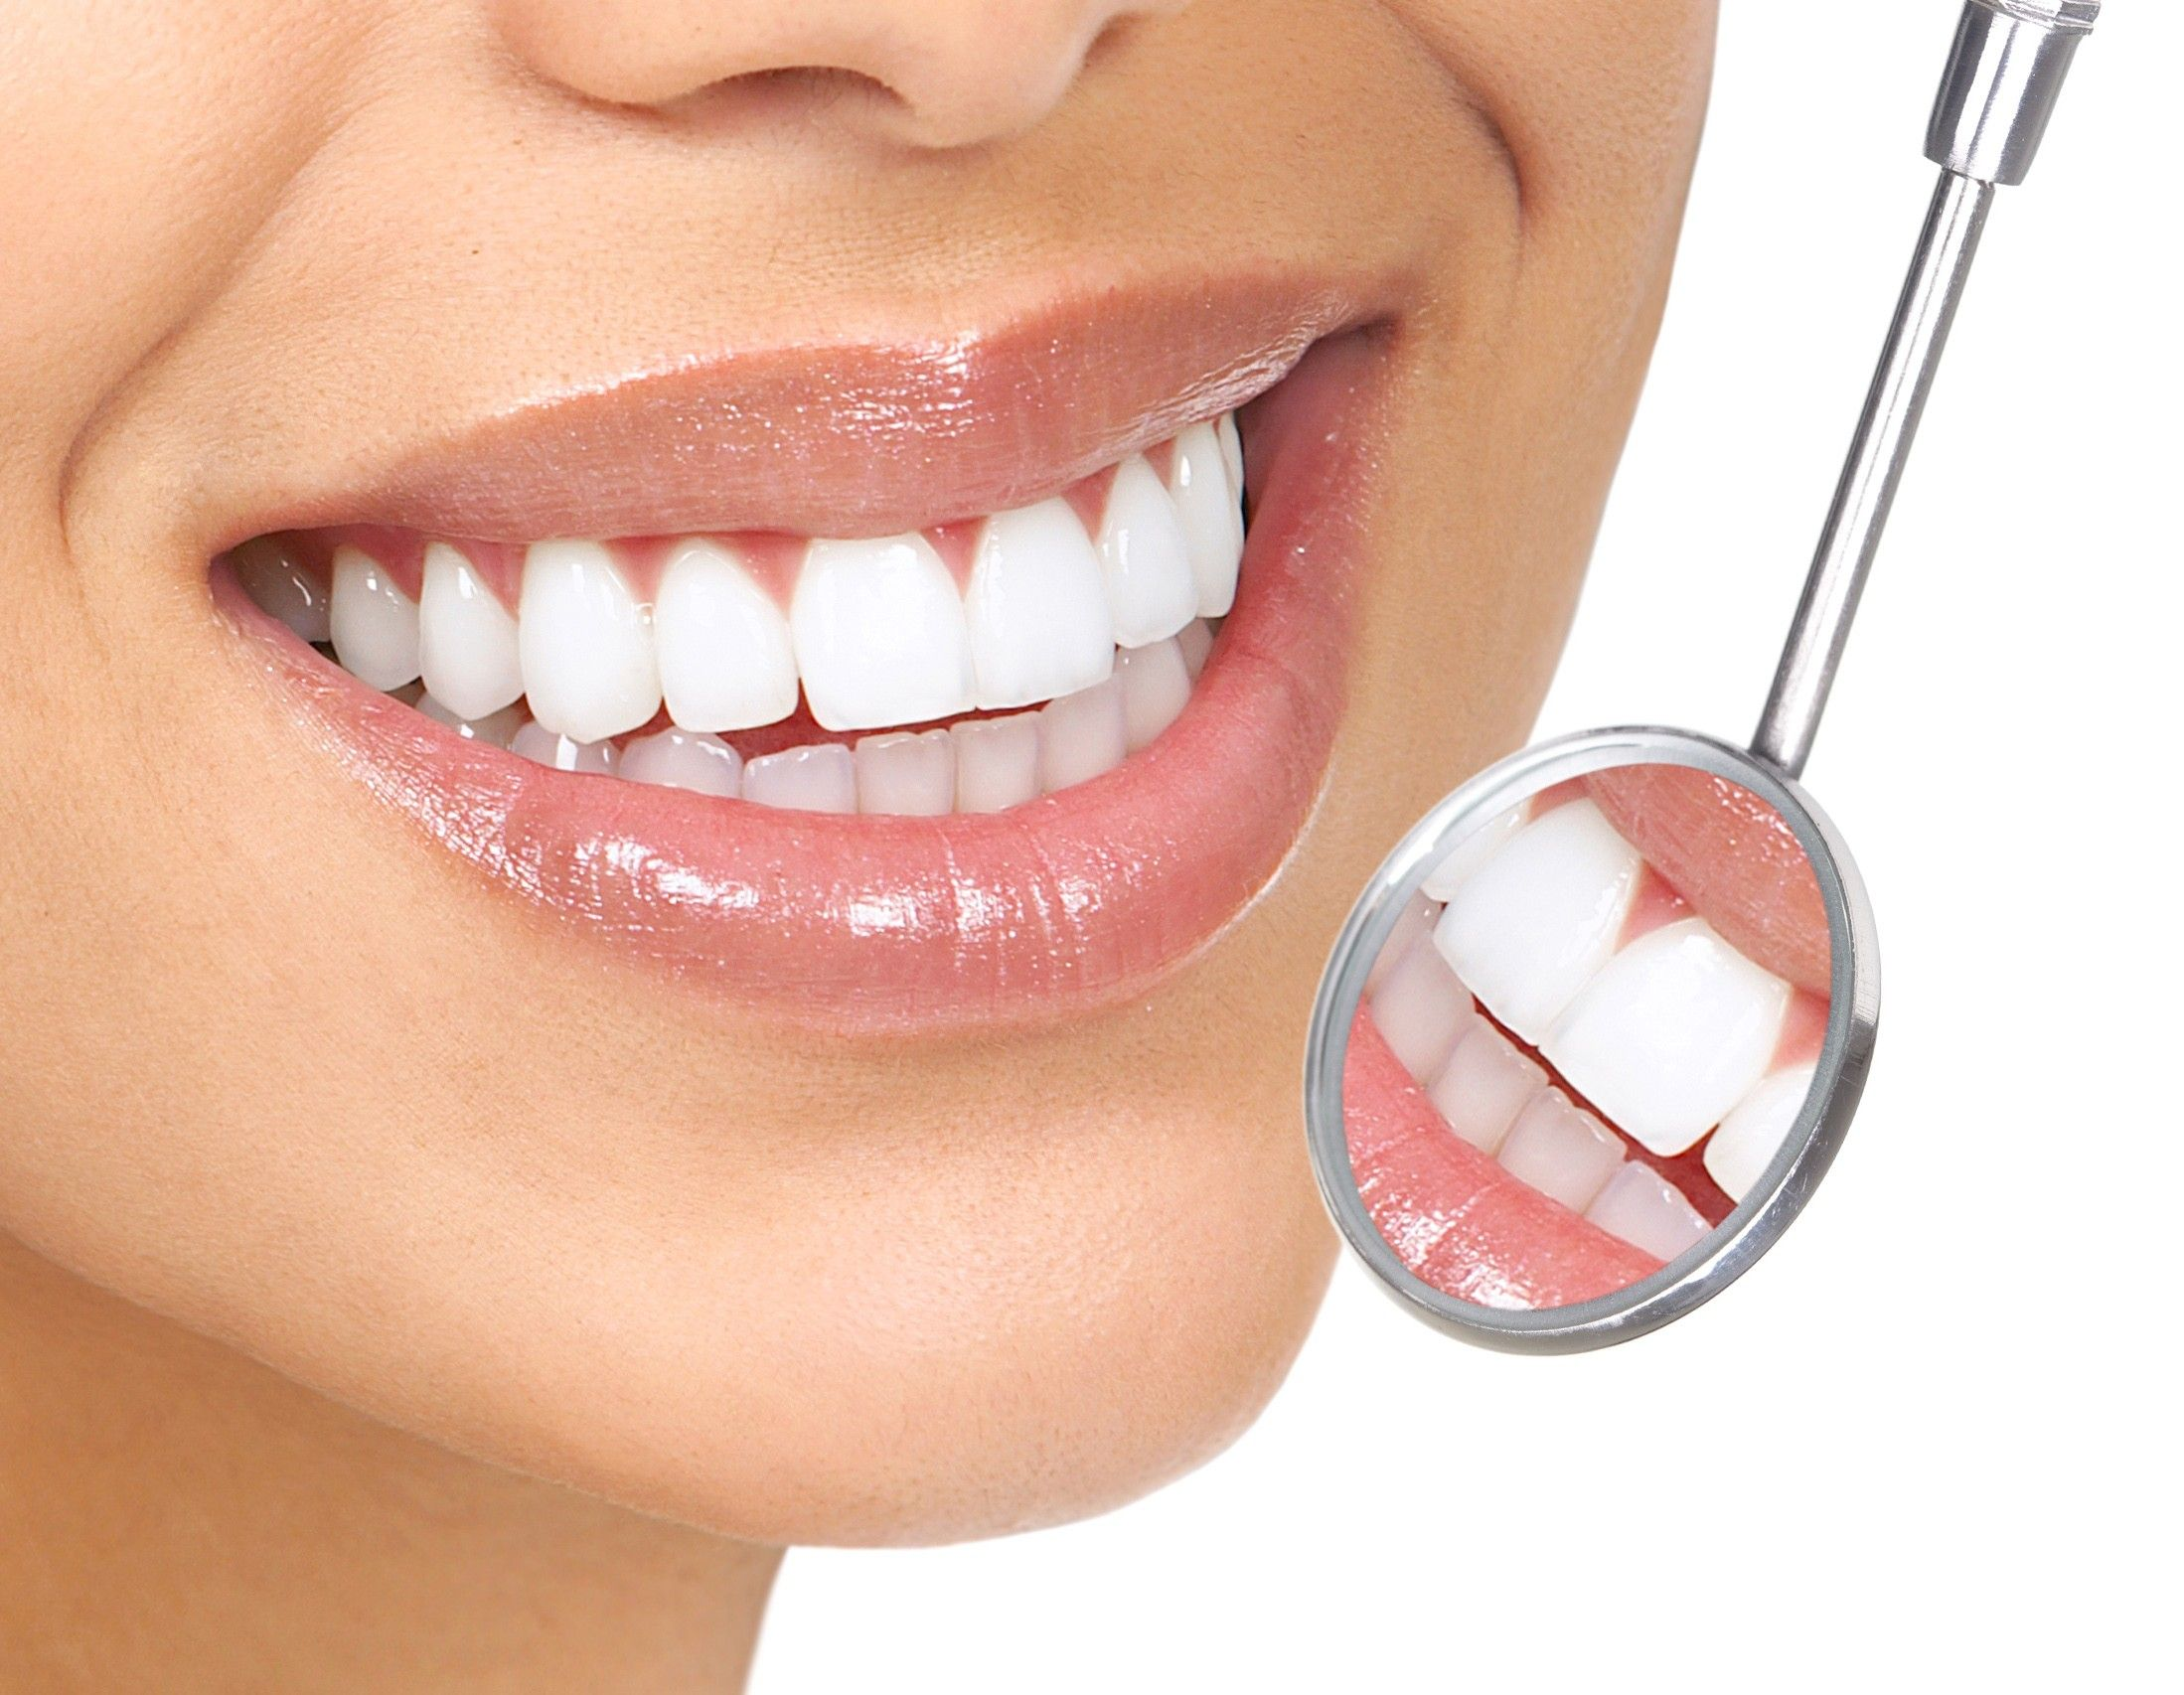 Dental Video Increases the Popularity of Dental Insurance